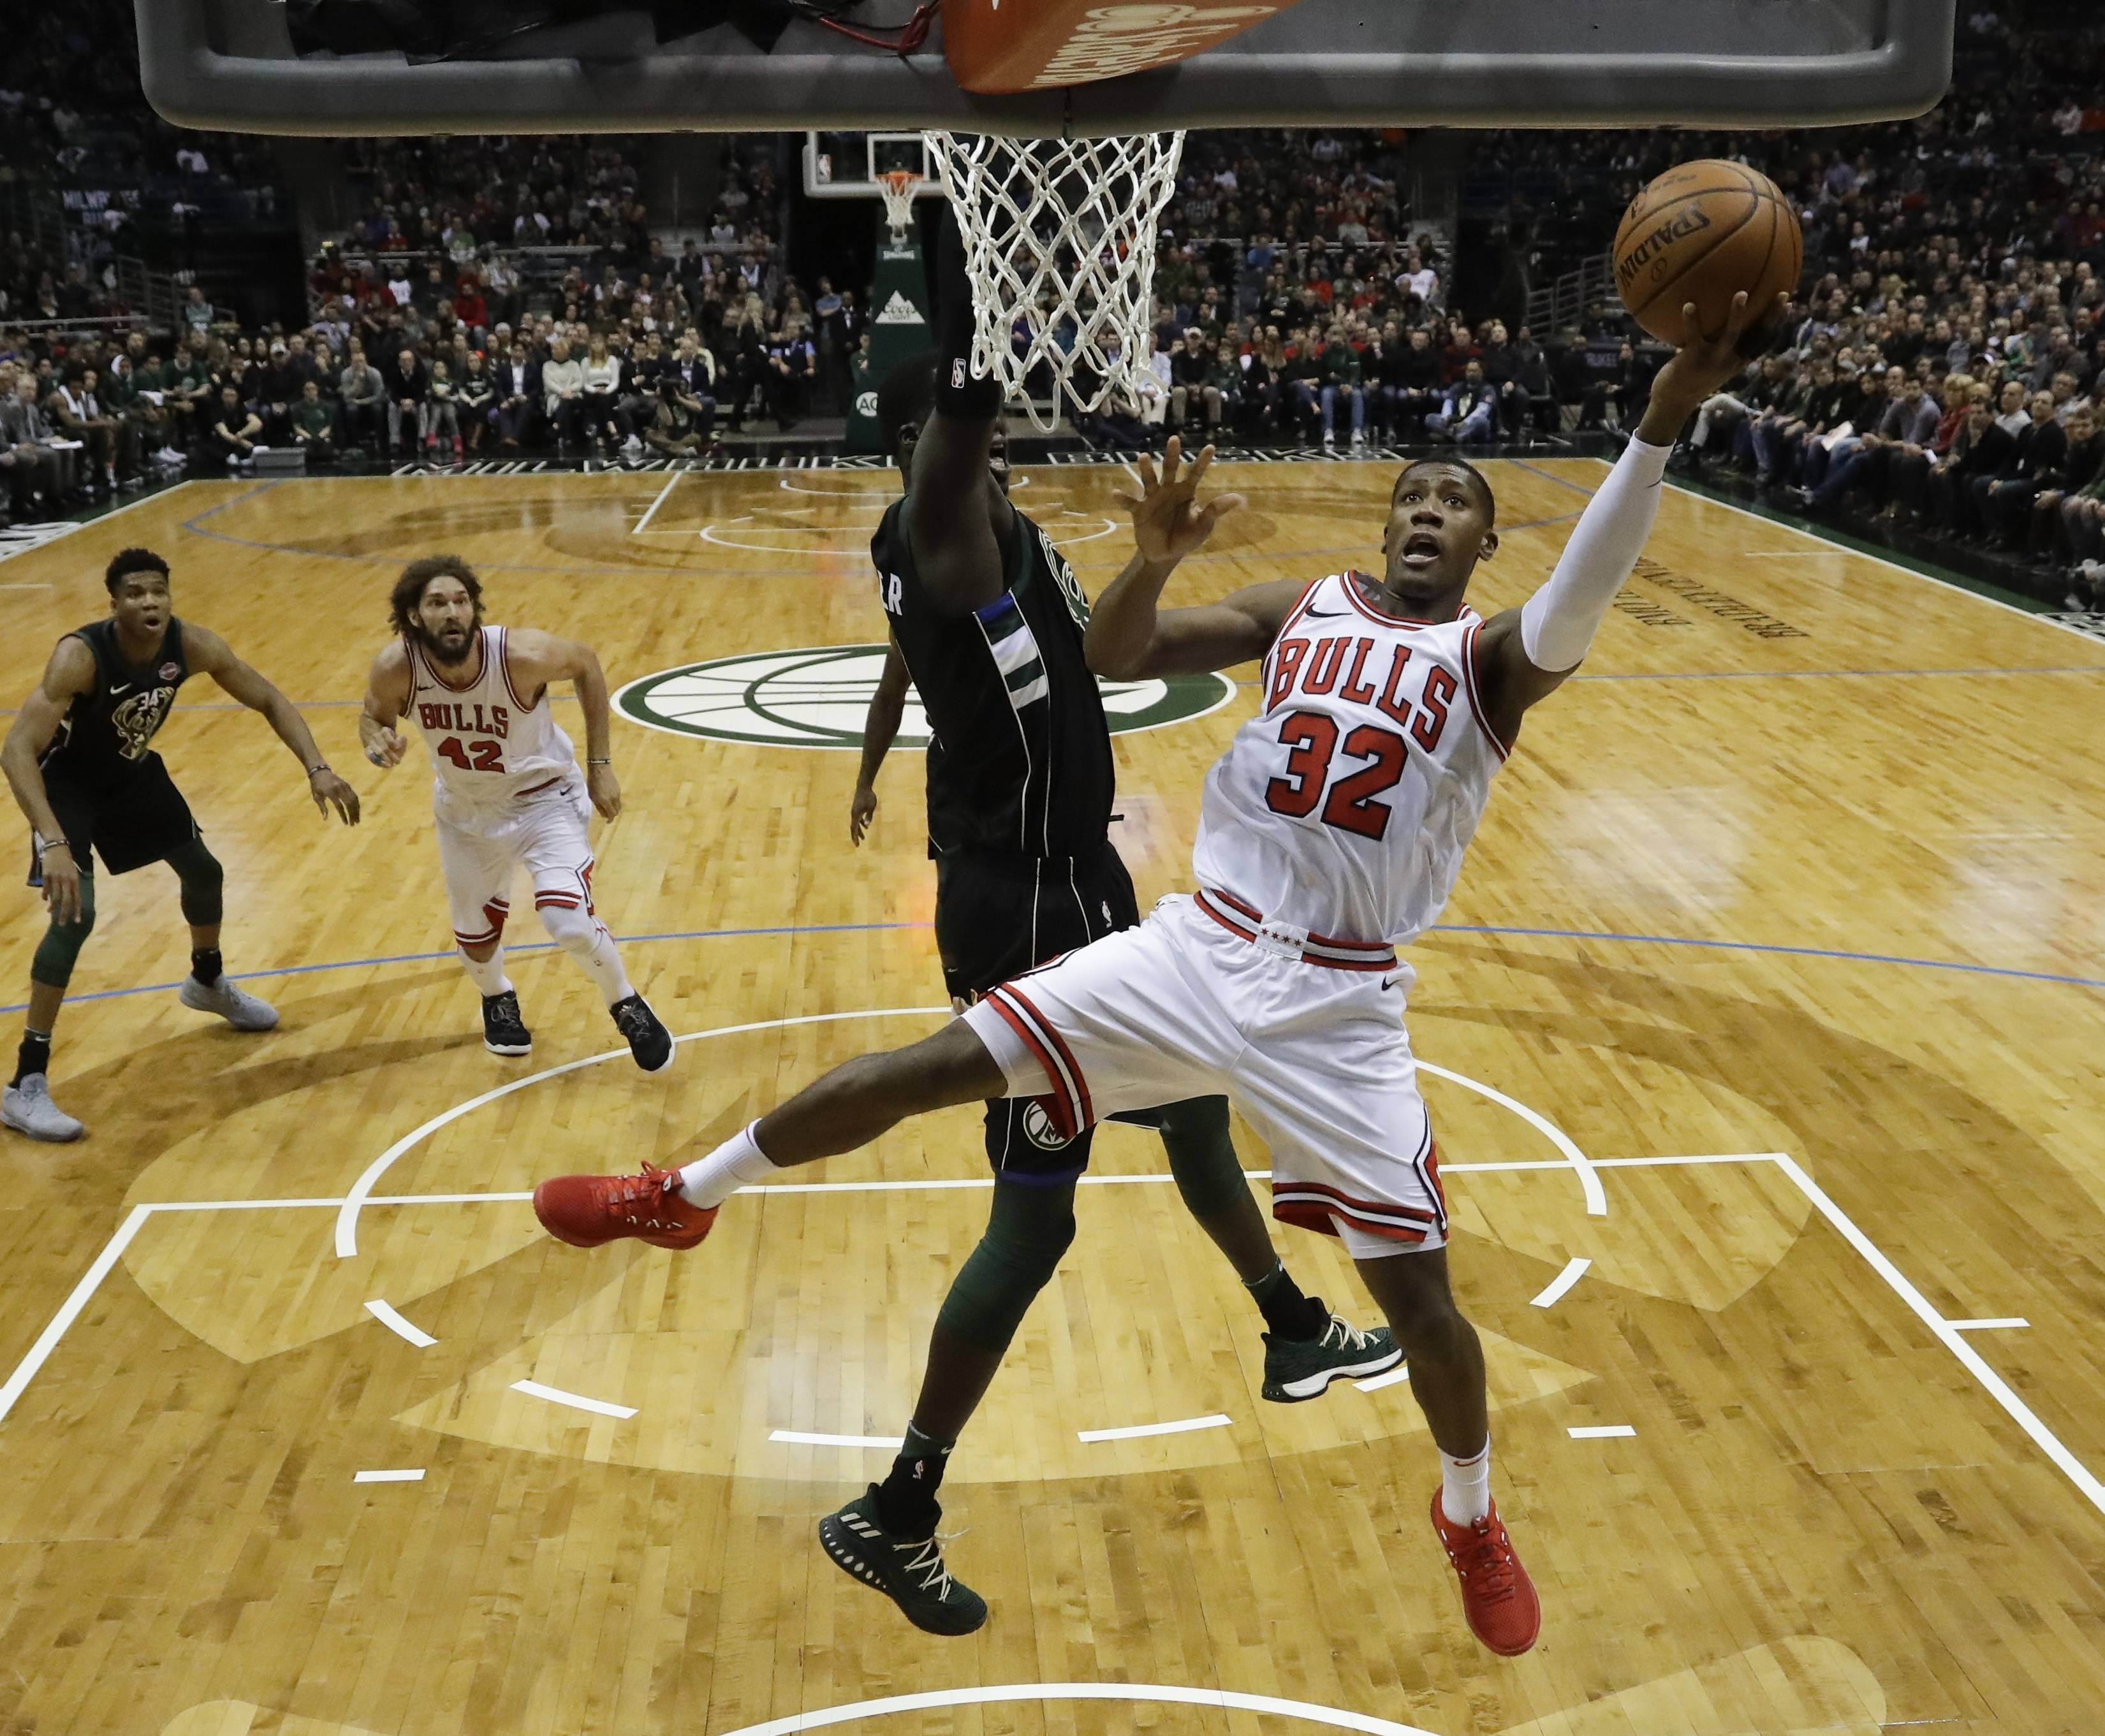 Chicago Bulls' Kris Dunn shoots during the first half of an NBA basketball game against the Milwaukee Bucks Friday, Dec. 15, 2017, in Milwaukee. (AP Photo/Morry Gash)